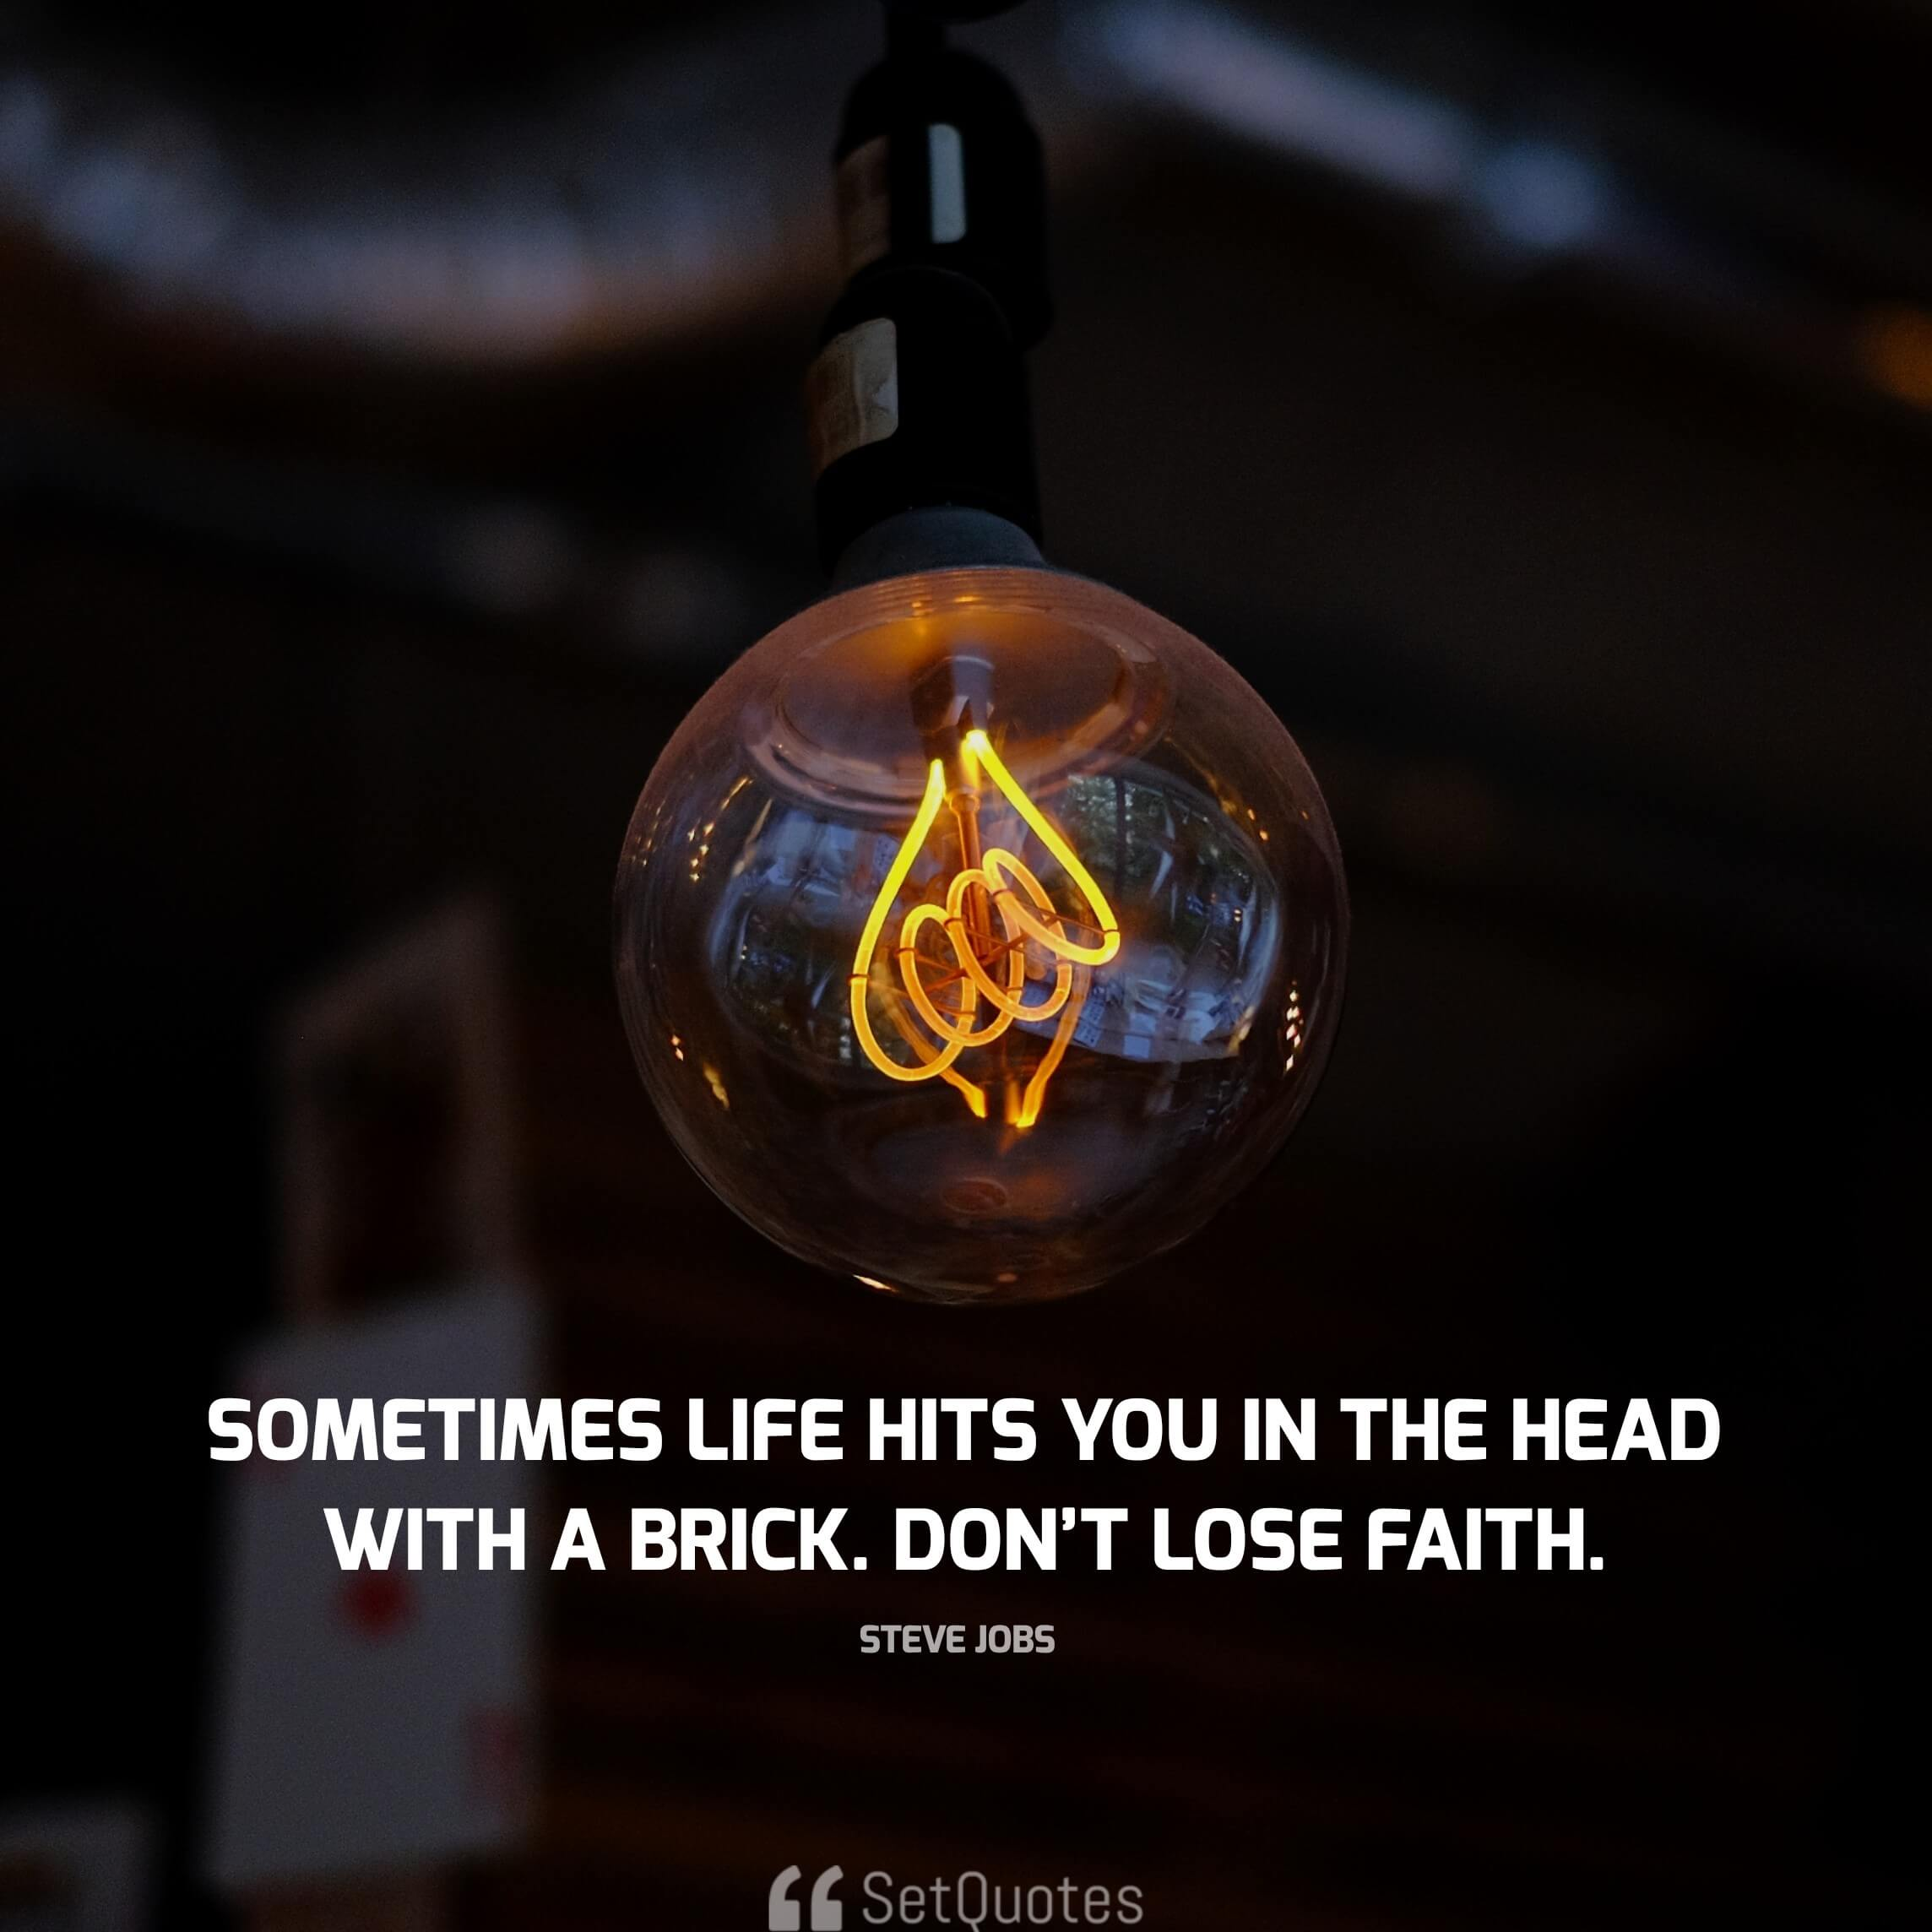 Sometimes life hits you in the head with a brick. Don't lose faith. - steve jobs quotes